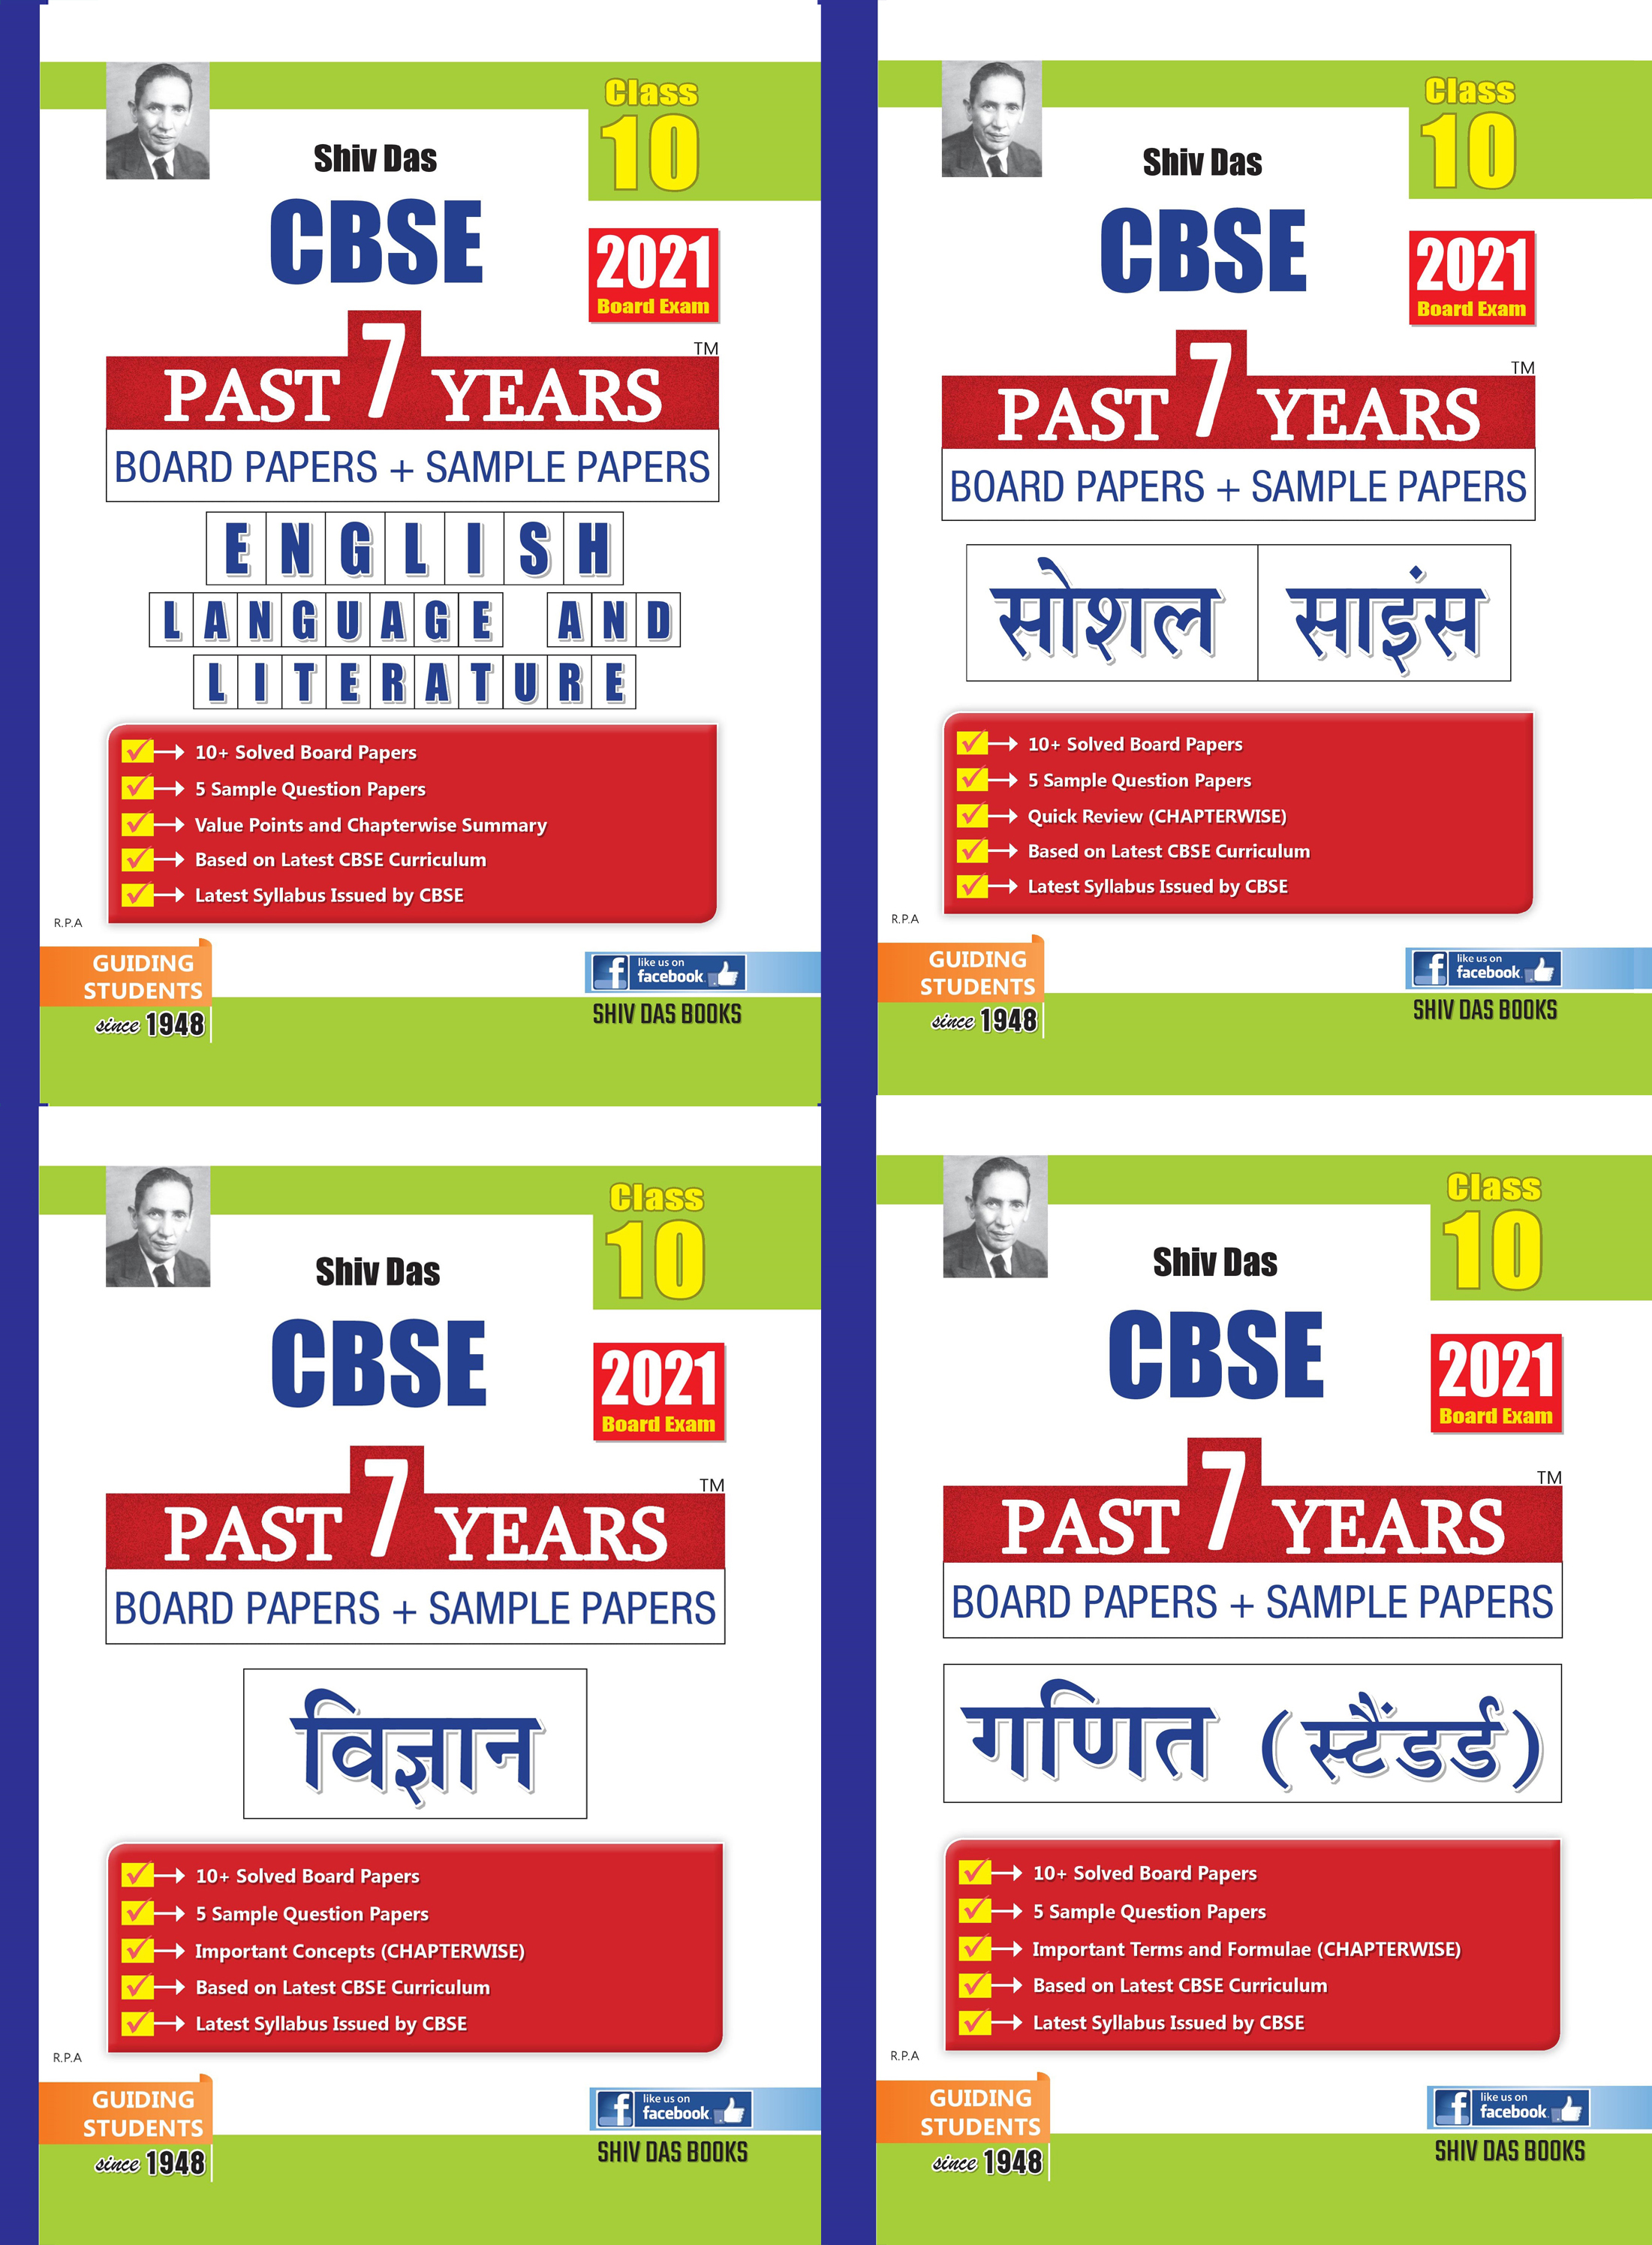 CBSE Past 7 Years Solved Board Papers and Sample Papers Combo Pack for Class 10 English Language and Literature Samajik Vigyan Ganit (Standard) Vigyan By SHIVDAS (2021 Board Exam Edition)